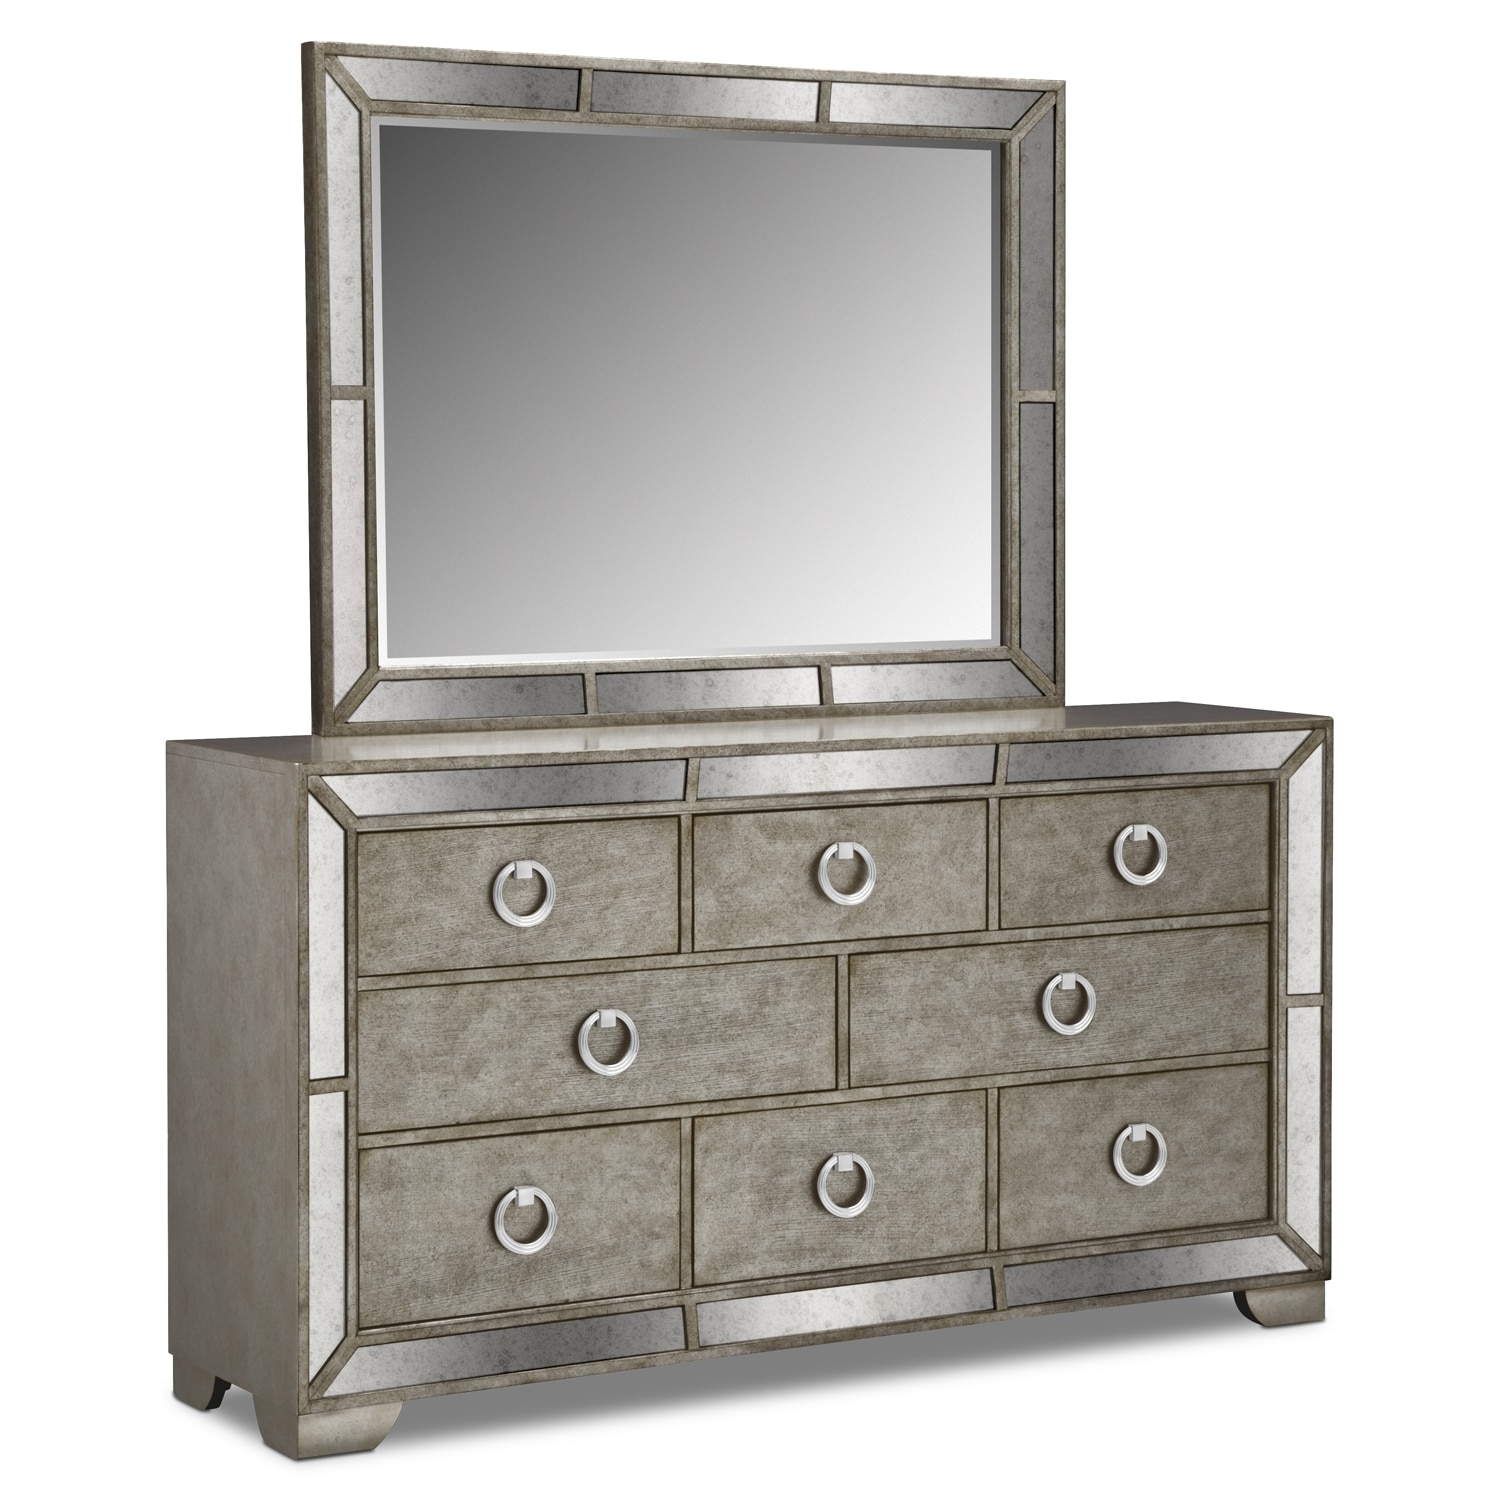 bedroom furniture angelina dresser and mirror metallic